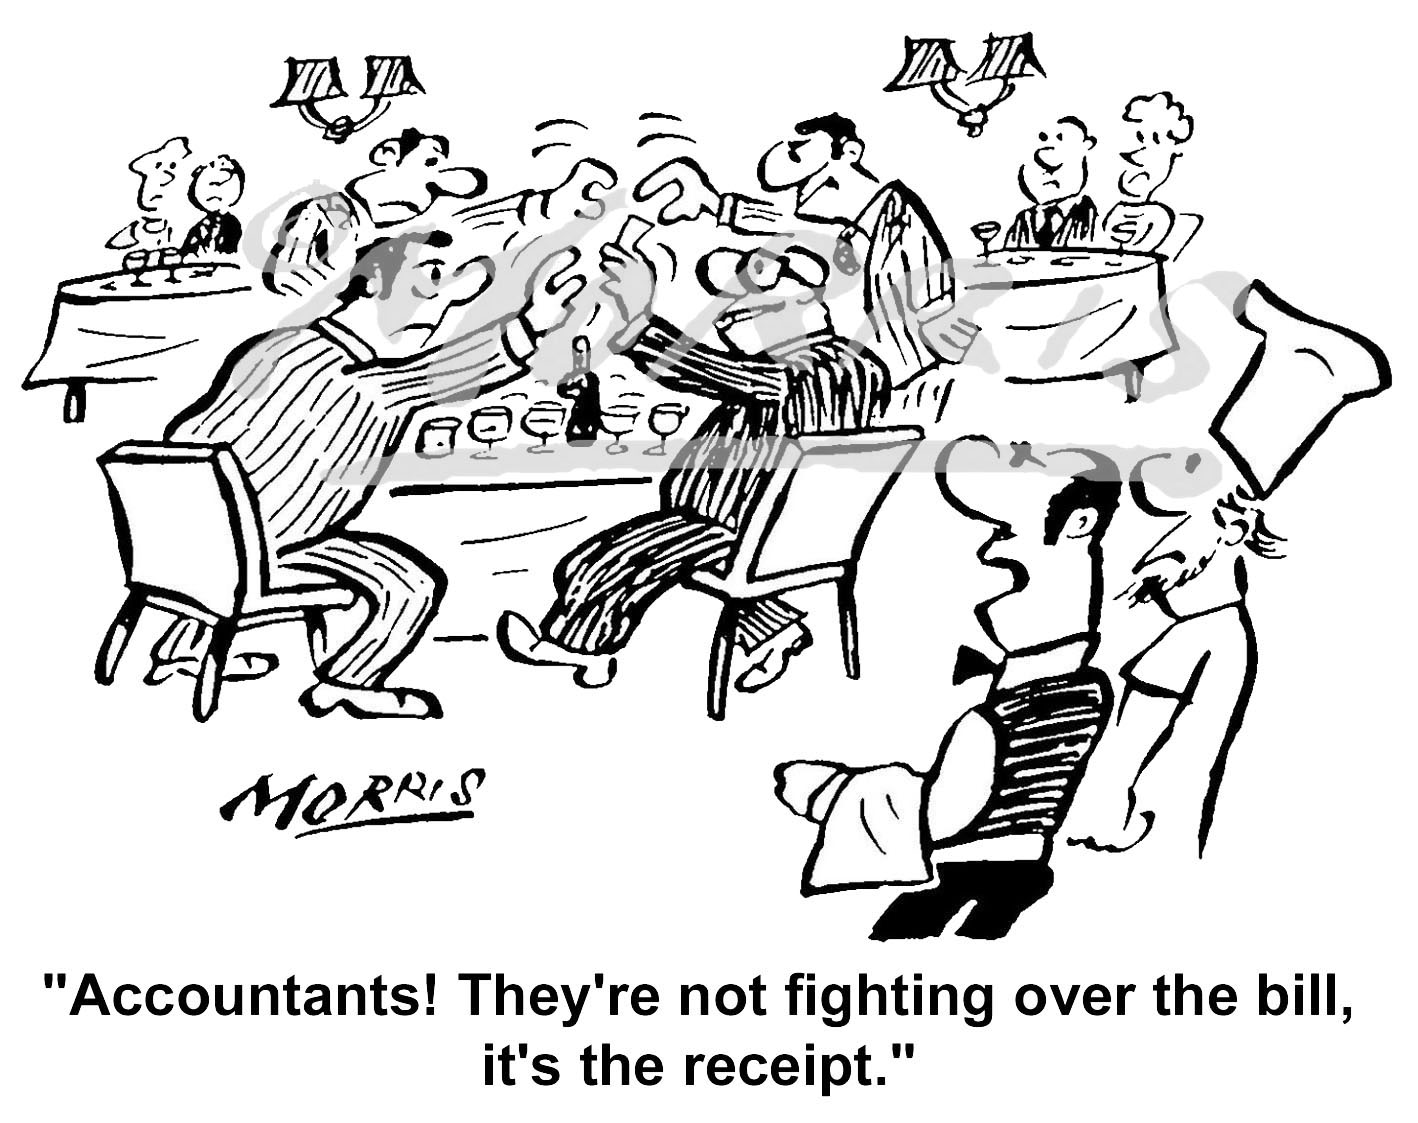 Accountant receipt cartoon Ref: 4257bw